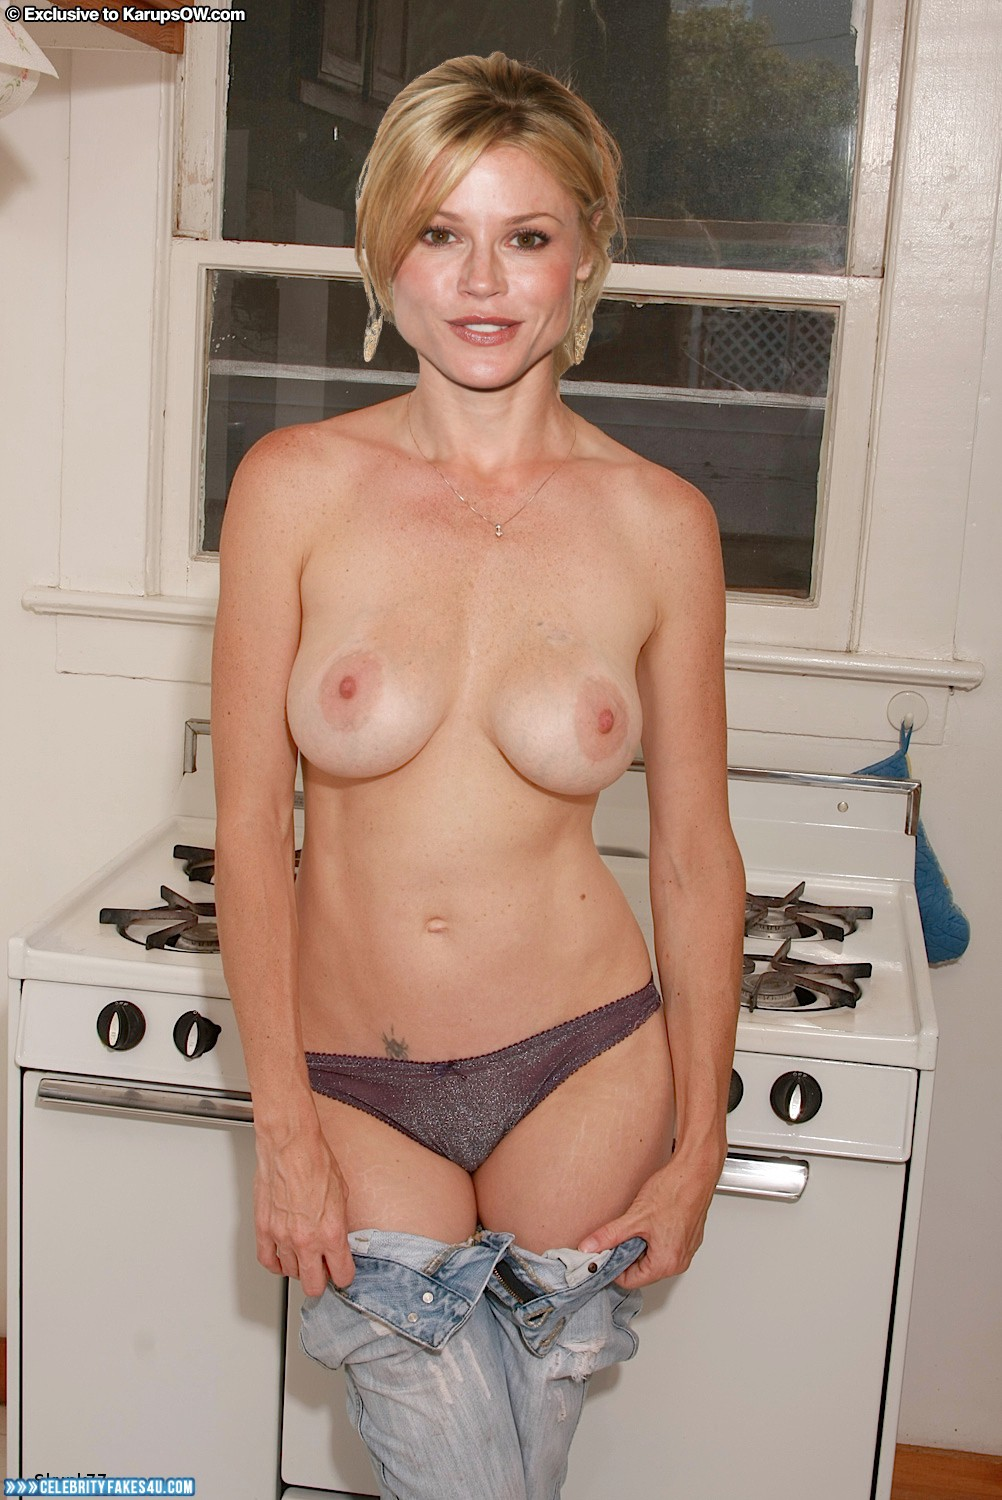 julie-bowen-nude-boobs-tits-model-playboy-sex-girl